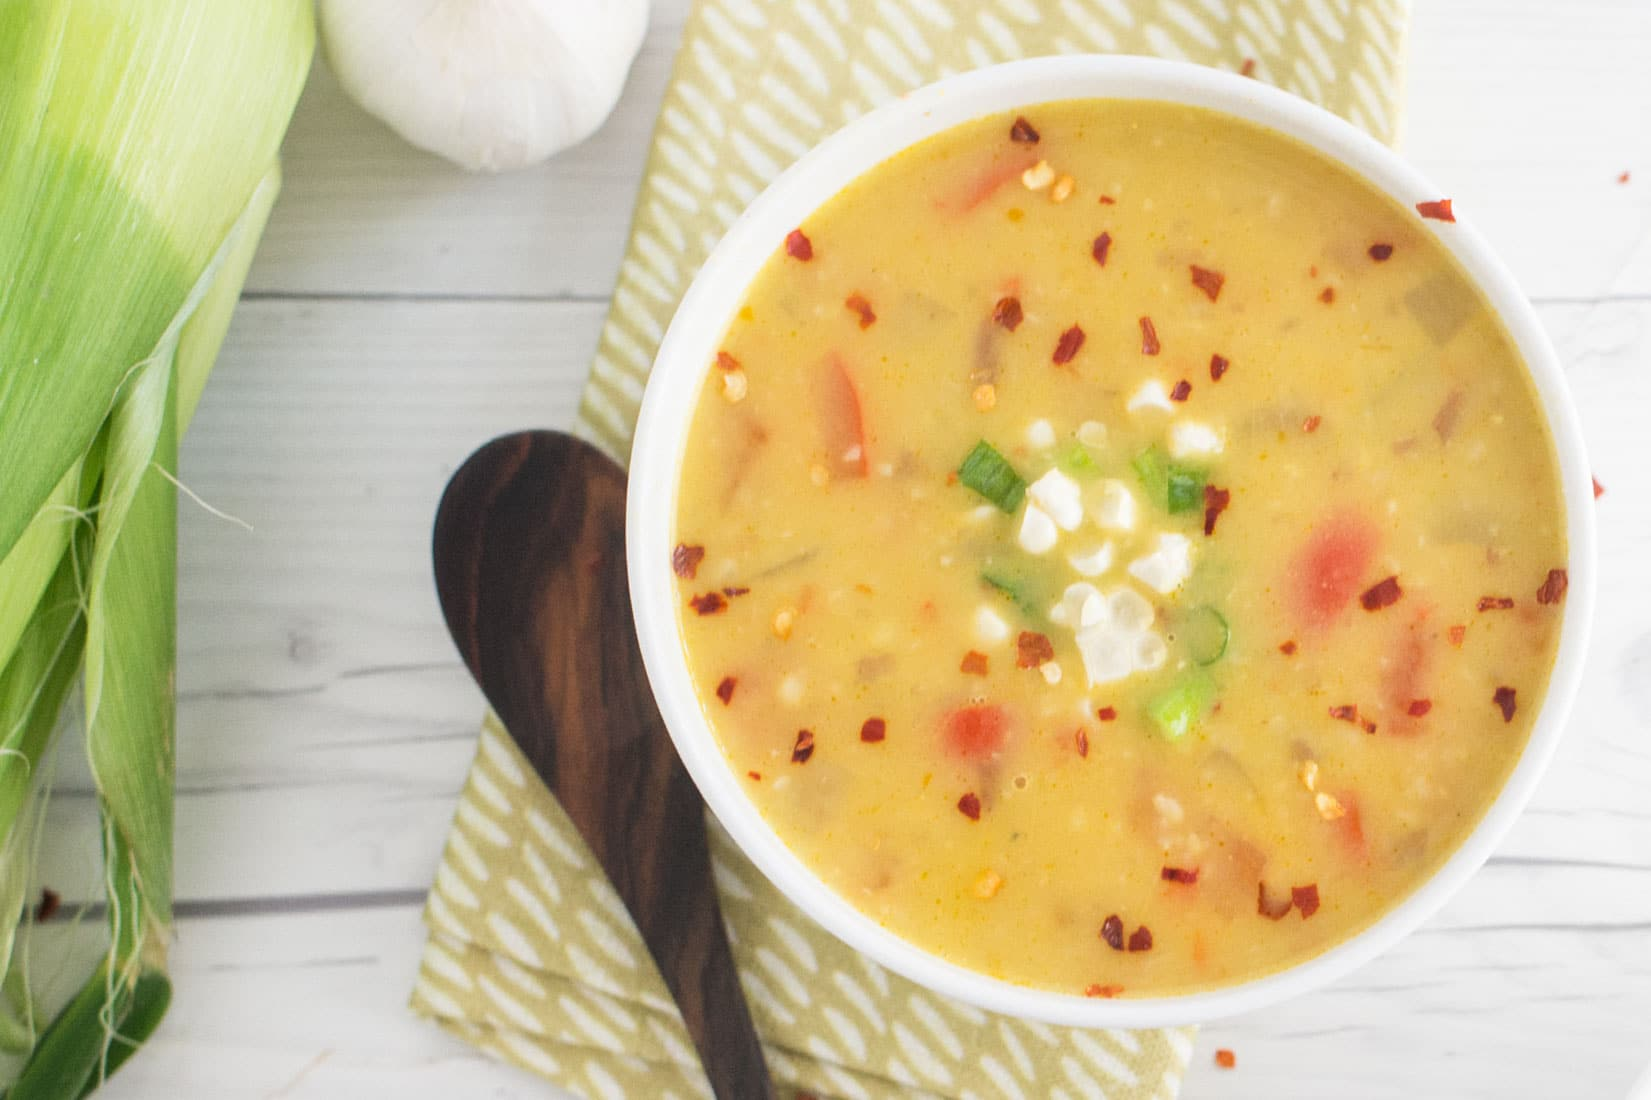 Vegan Corn Chowder -- This creamy corn chowder recipe is not only healthy and easy to make, but perfect for Summer dinners. Fresh corn, red potatoes, and red peppers make this plant based meal so delicious. - mindfulavocado